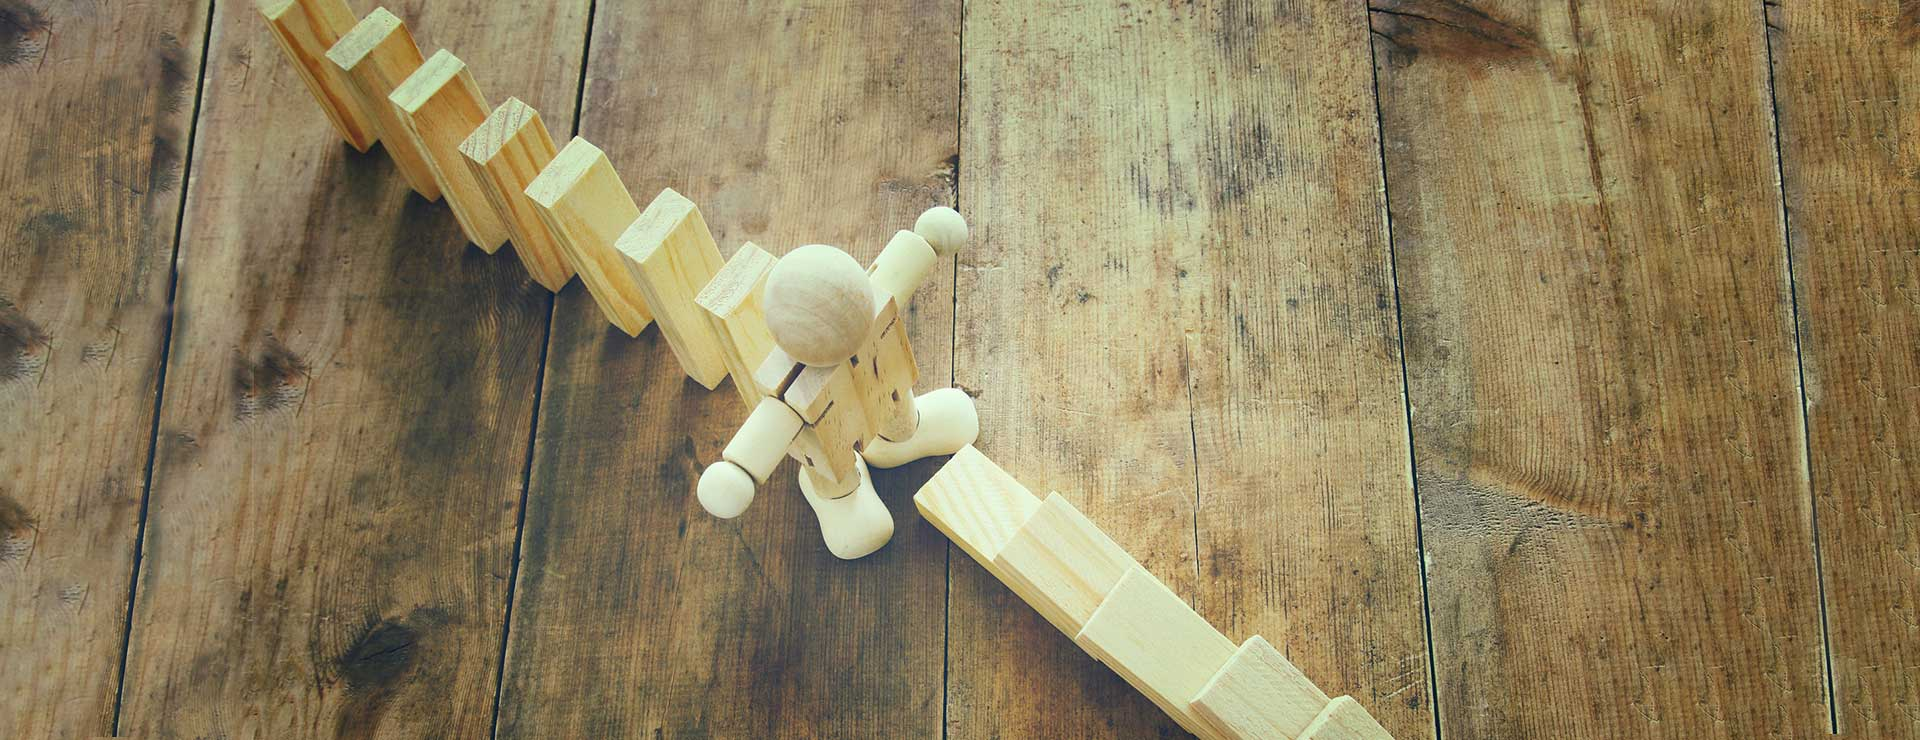 A wooden dummy stopping the domino effect